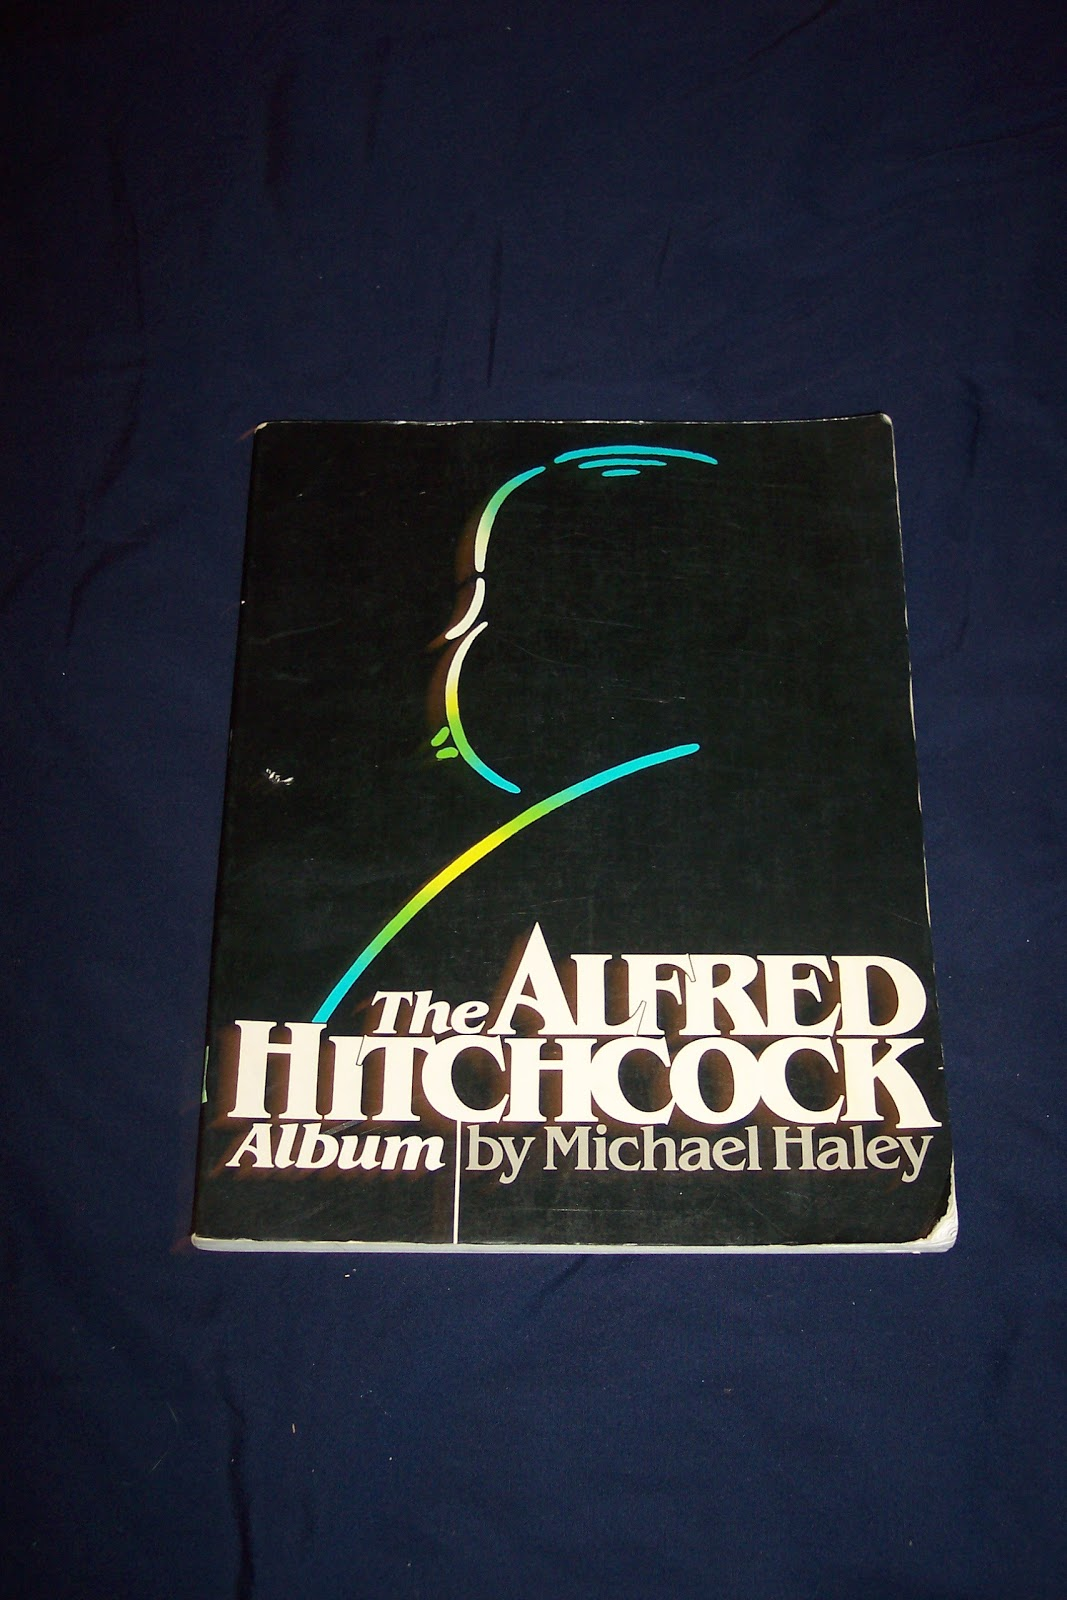 a study of the life and career of alfred hitchcock Early life and education alfred hitchcock was born in london, england, on august 13, 1899, the youngest of william and emma whalen hitchcock's three.